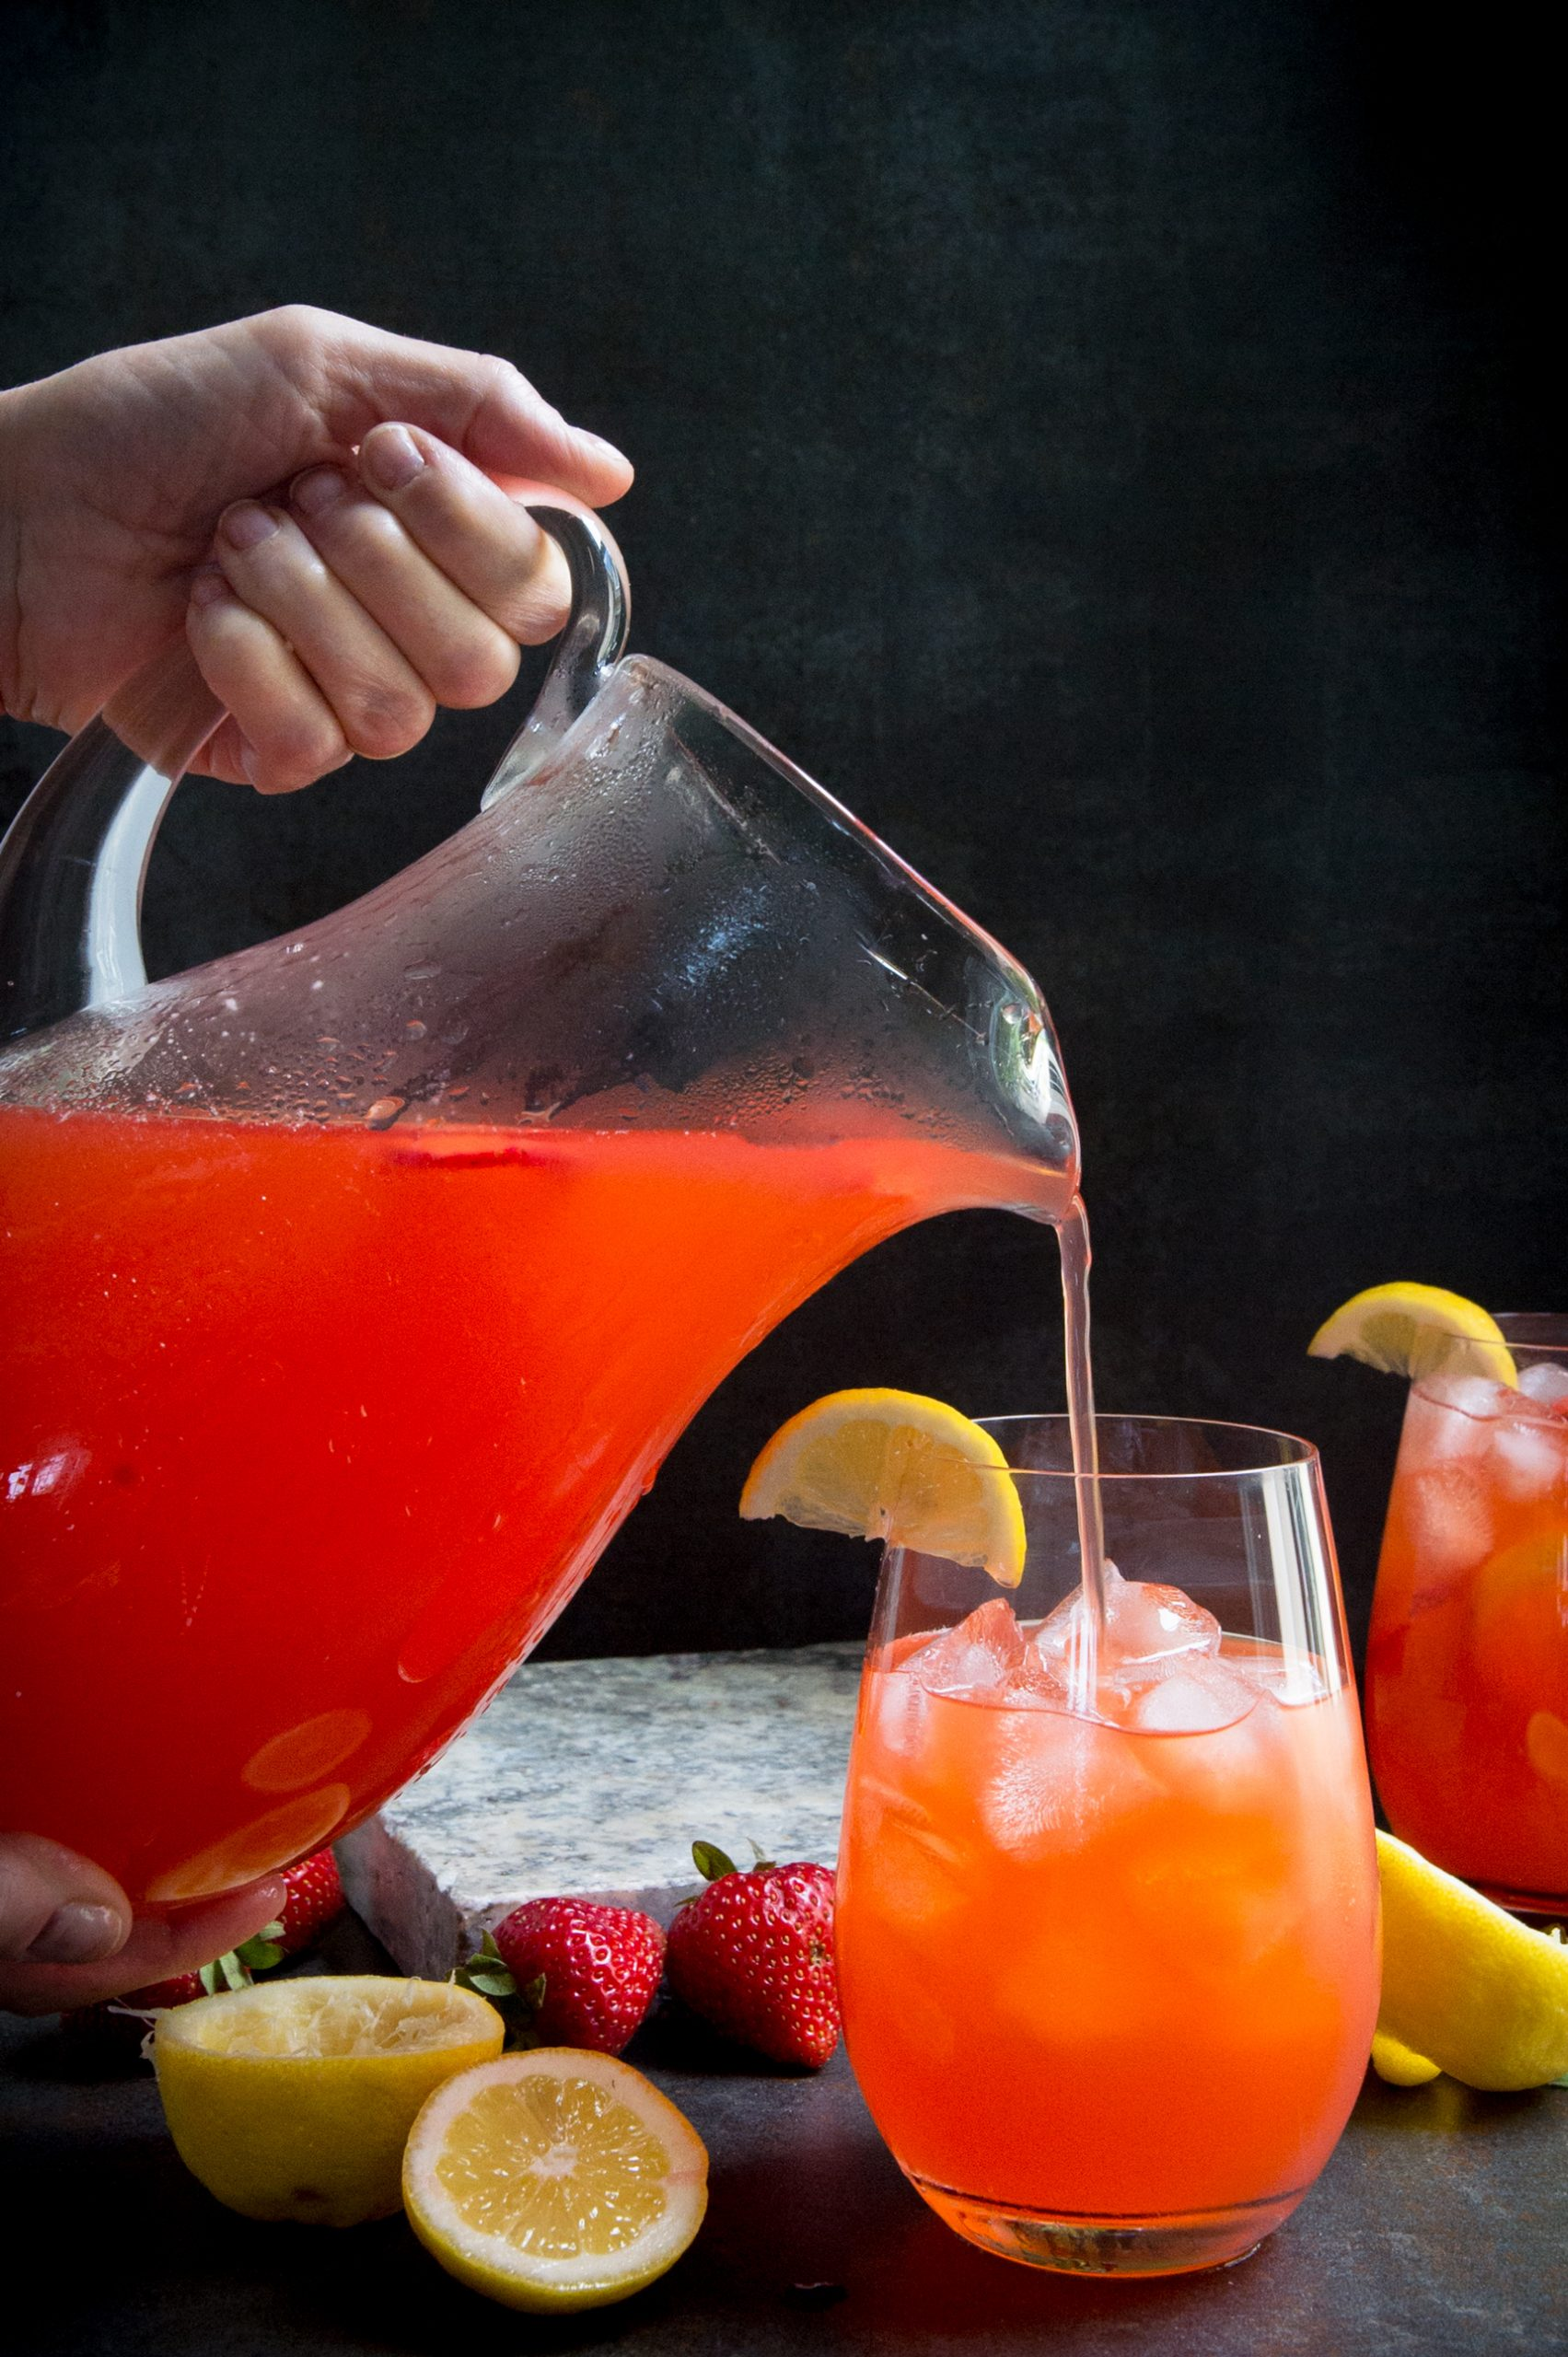 Pouring the sugar-free strawberry lemonade into a glass.